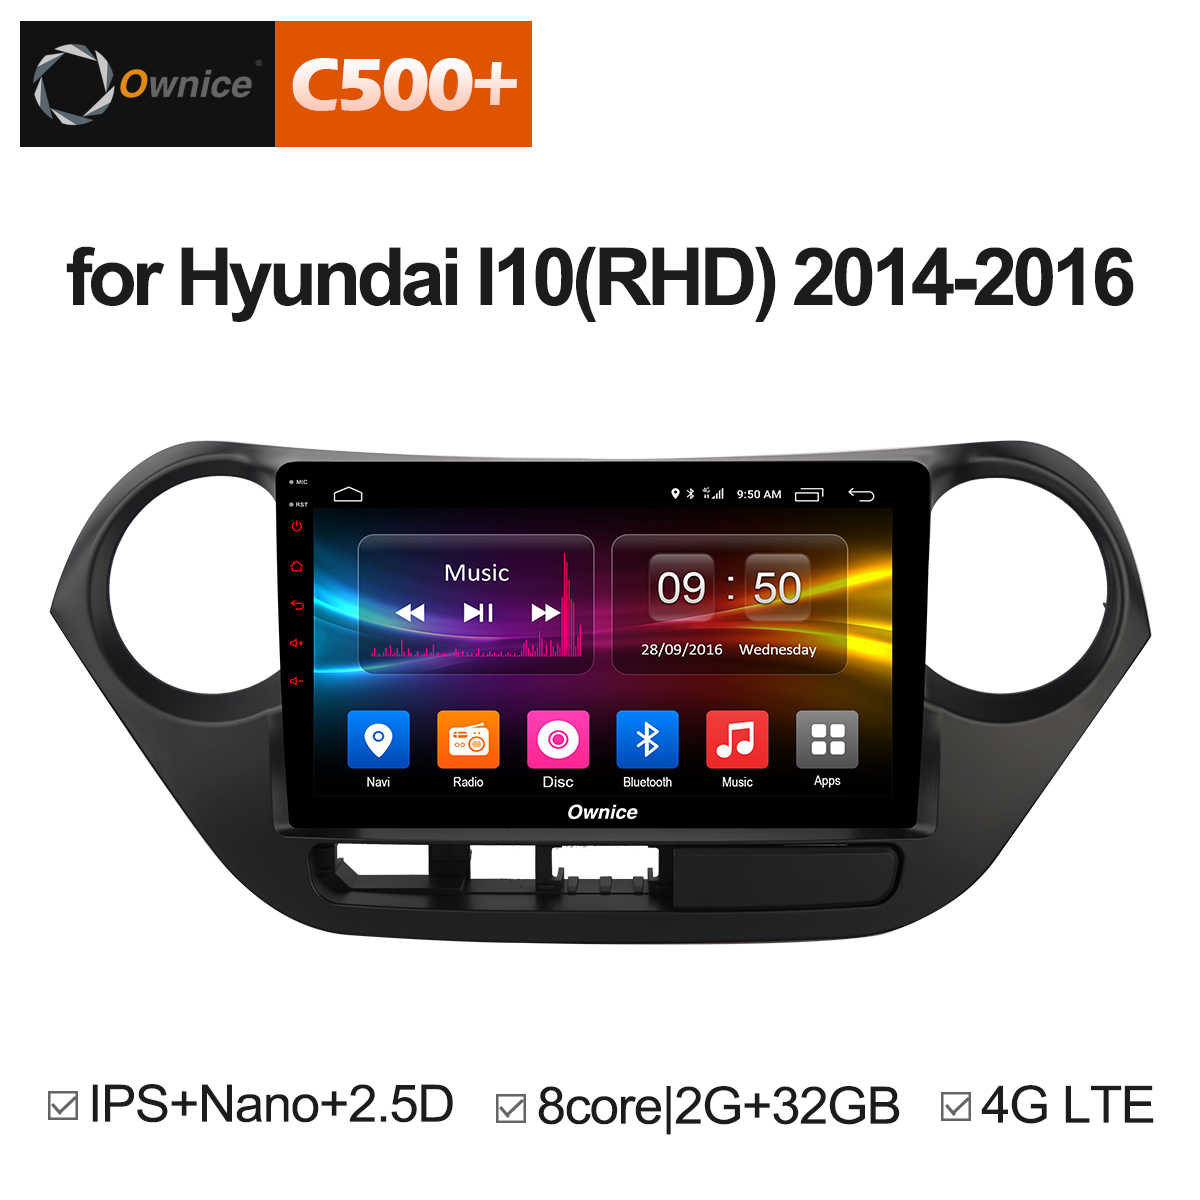 Ownice C500 + G10 9 Inch Android 8.1 Auto GPS Navigatie Radio Multimedia Speler Voor HYUNDAI I10 2014 2015 2016 grand i10 RHD LHD